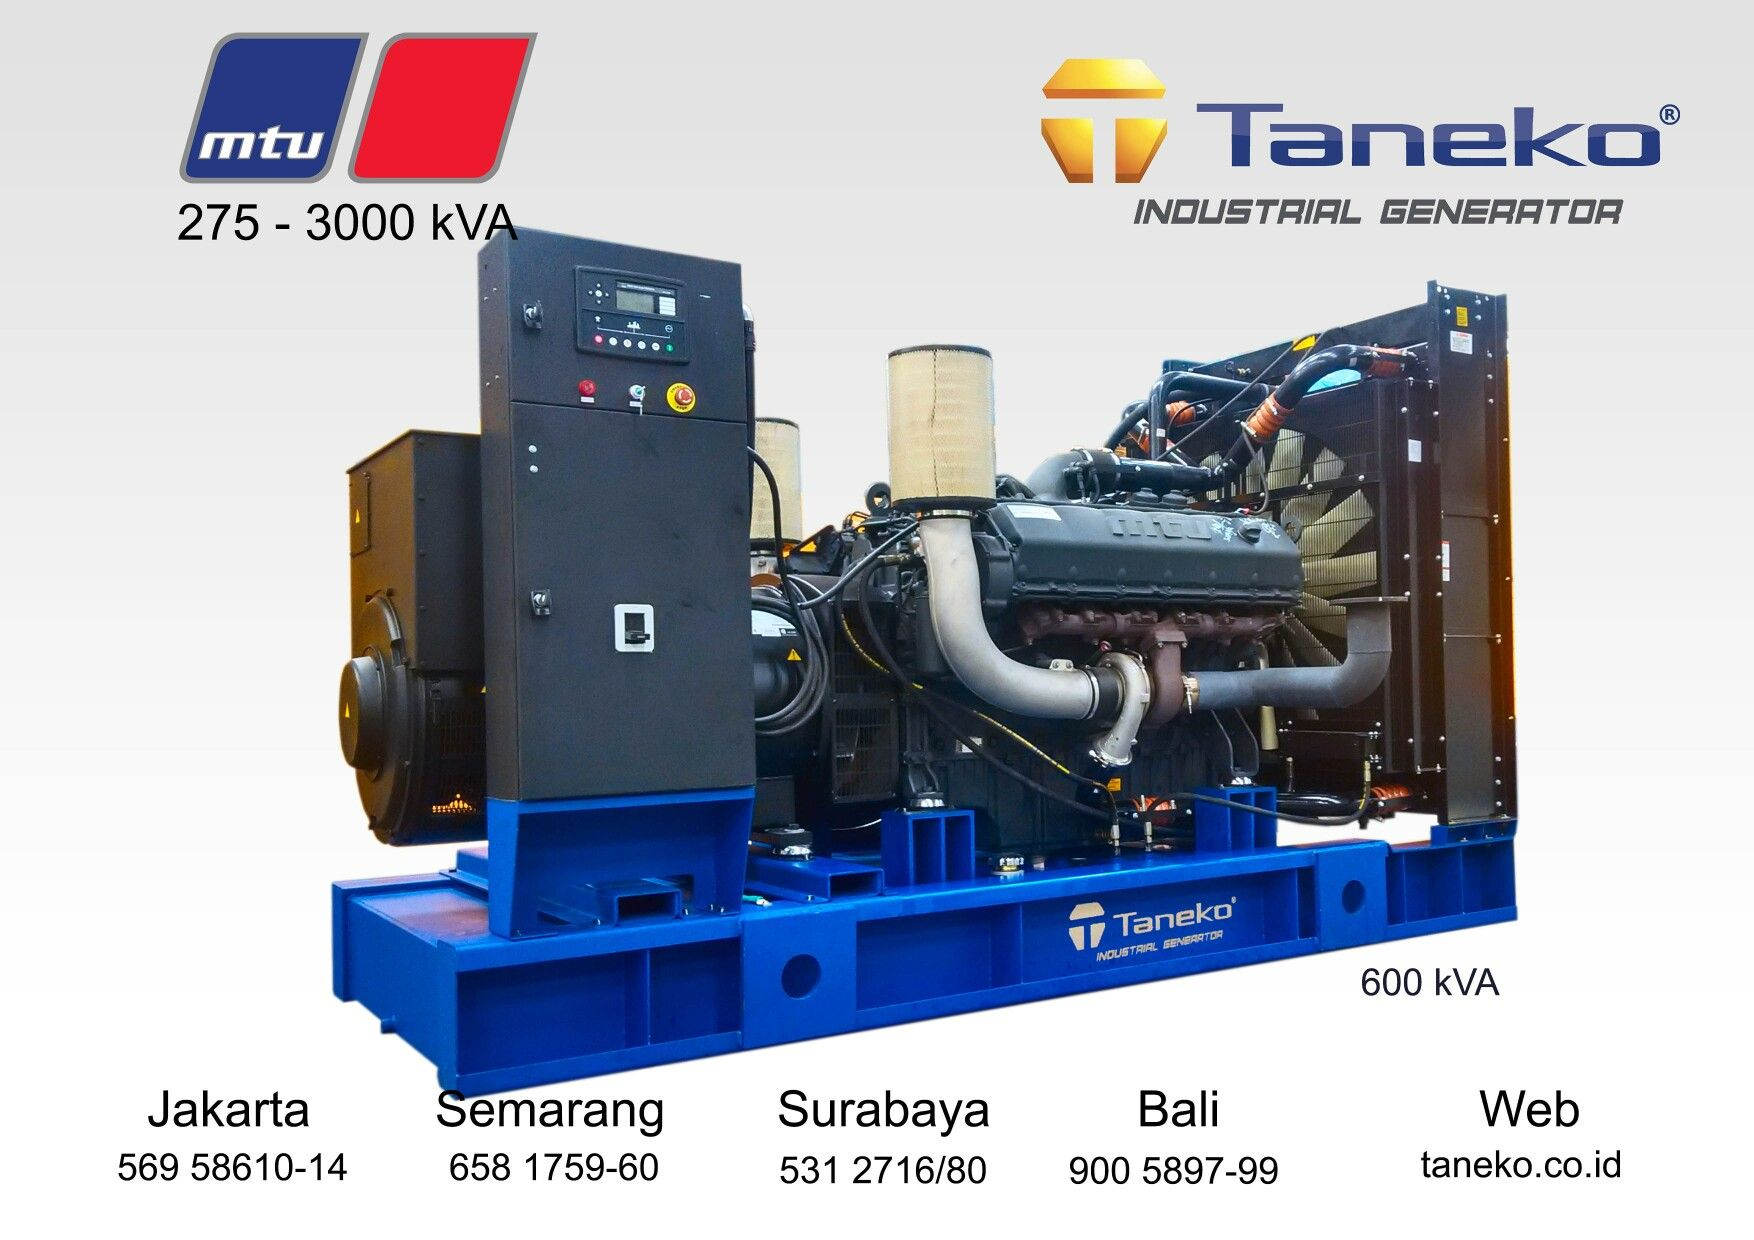 Weekend Post At Frame Mtu 12v 1600 G10f Coupled With Stamford Hc I 544 E 600 Kva Prime Power Quality Generator Product From Taneko For Your Industrial